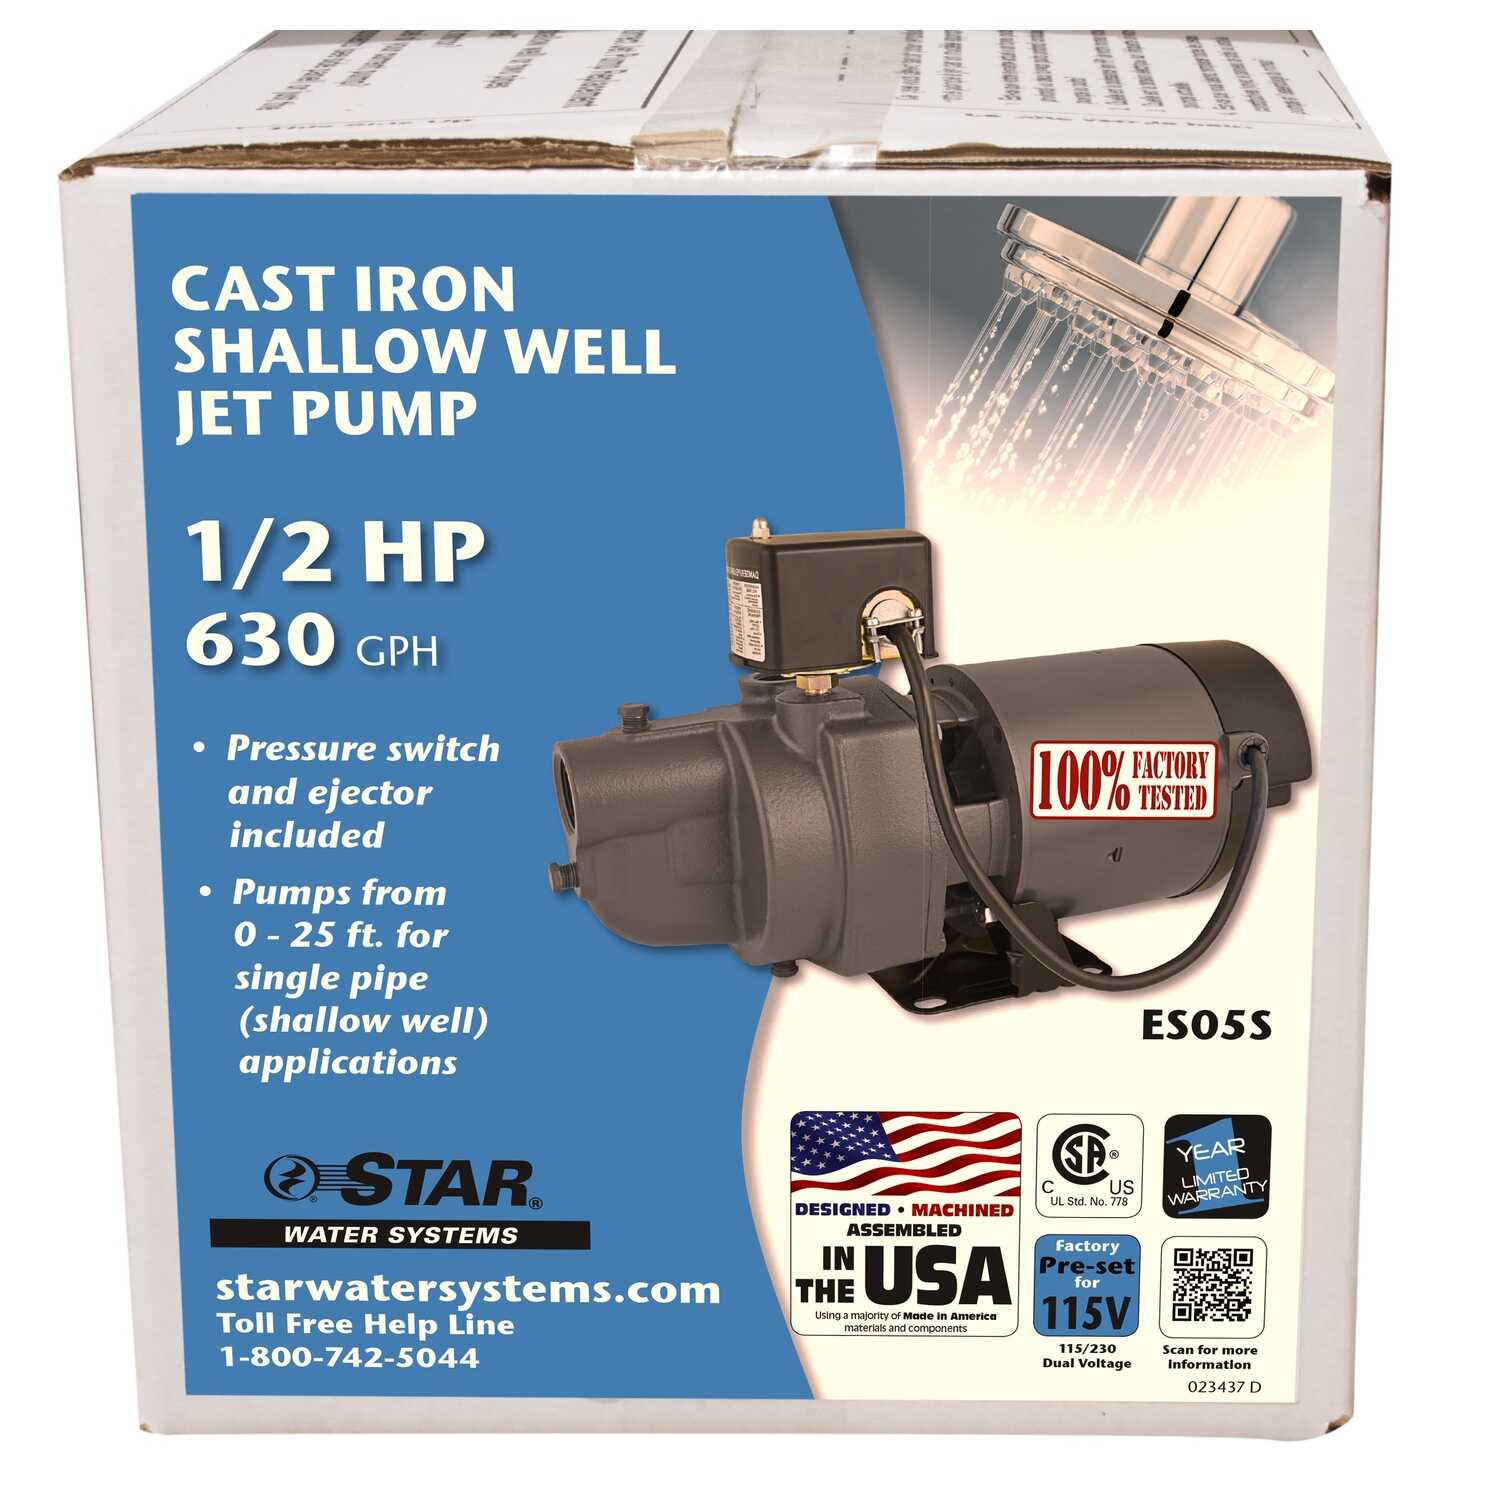 All Stars Pump Booster Test star water systems 1/2 hp 630 gph cast iron shallow well jet